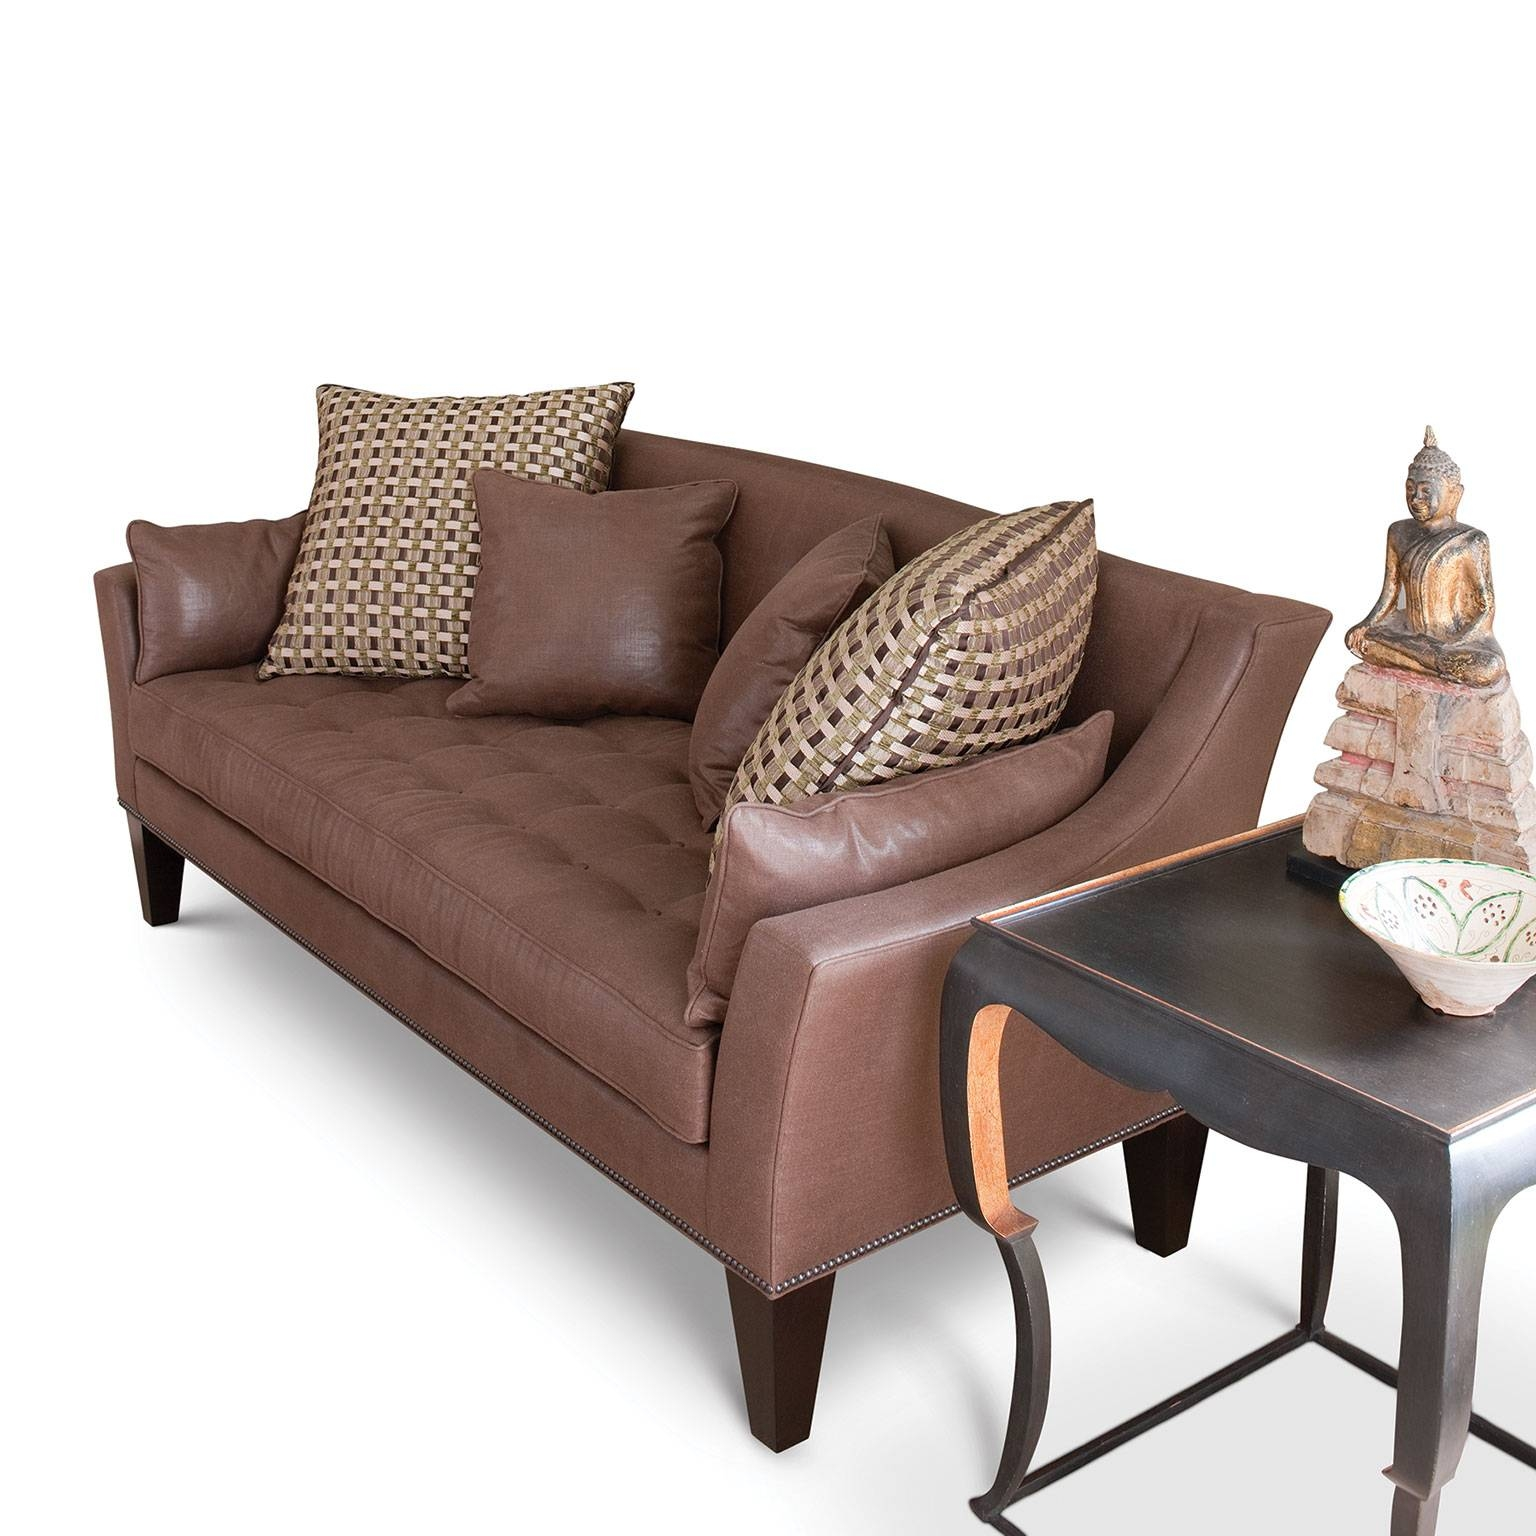 Allan Knightupholstery | Sofas And Sectionals | Palm Beach Sofa On with Wood Legs Sofas (Image 3 of 30)